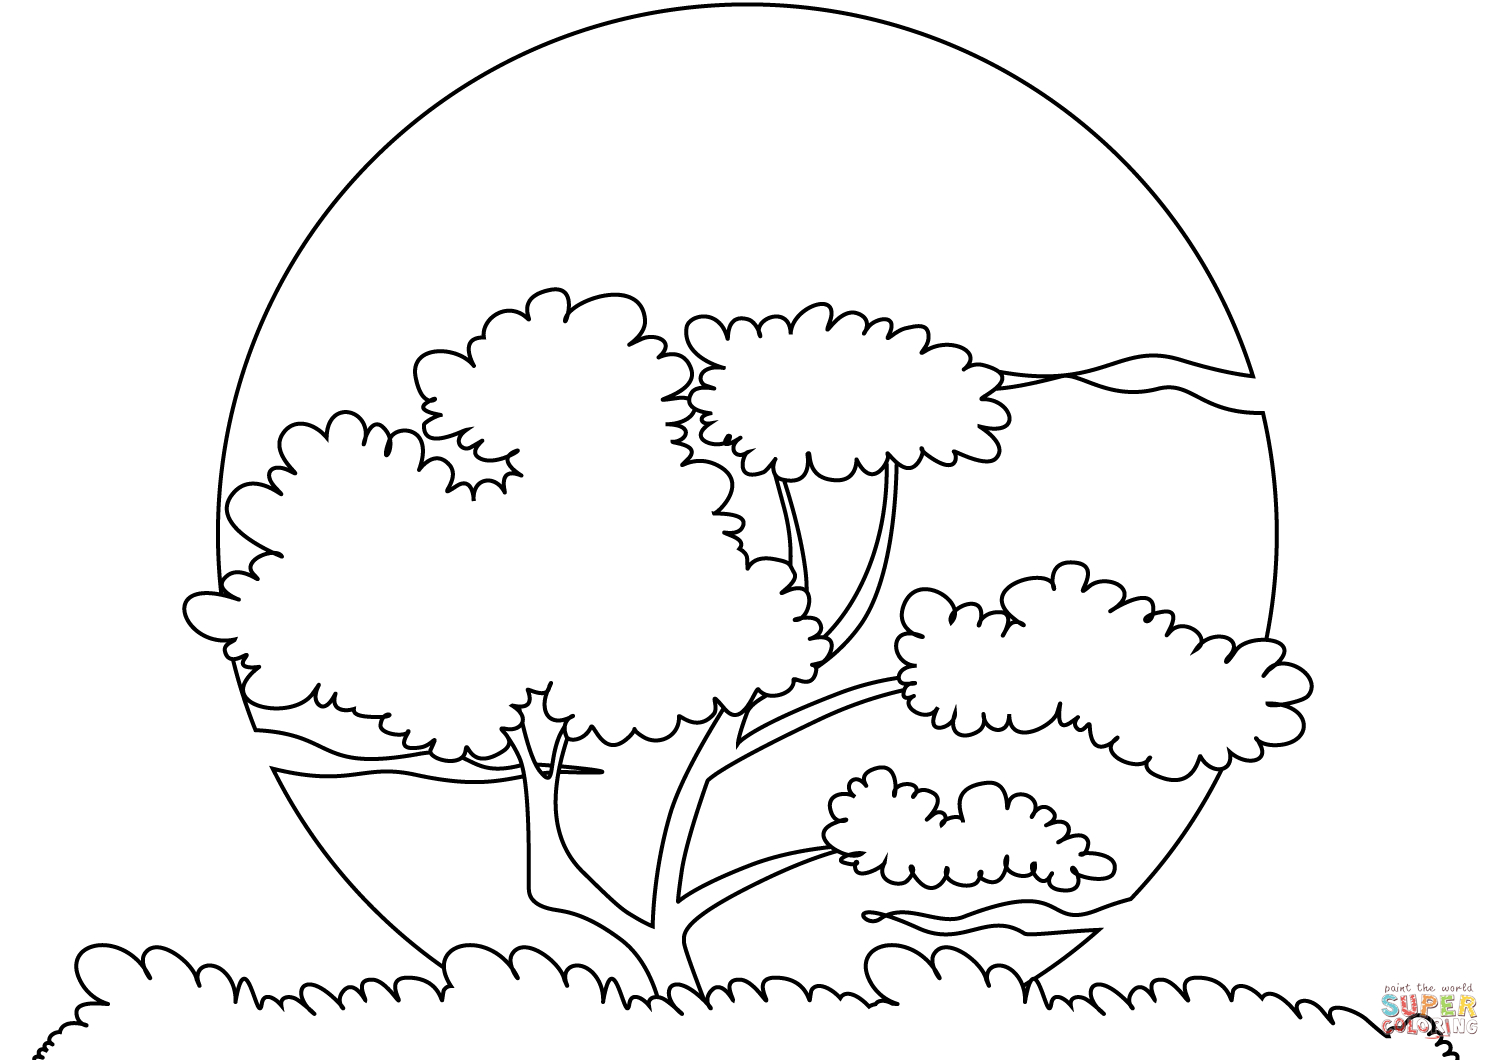 Sunset Sun Coloring Page | Free Printable Coloring Pages - Free Printable Pictures To Color